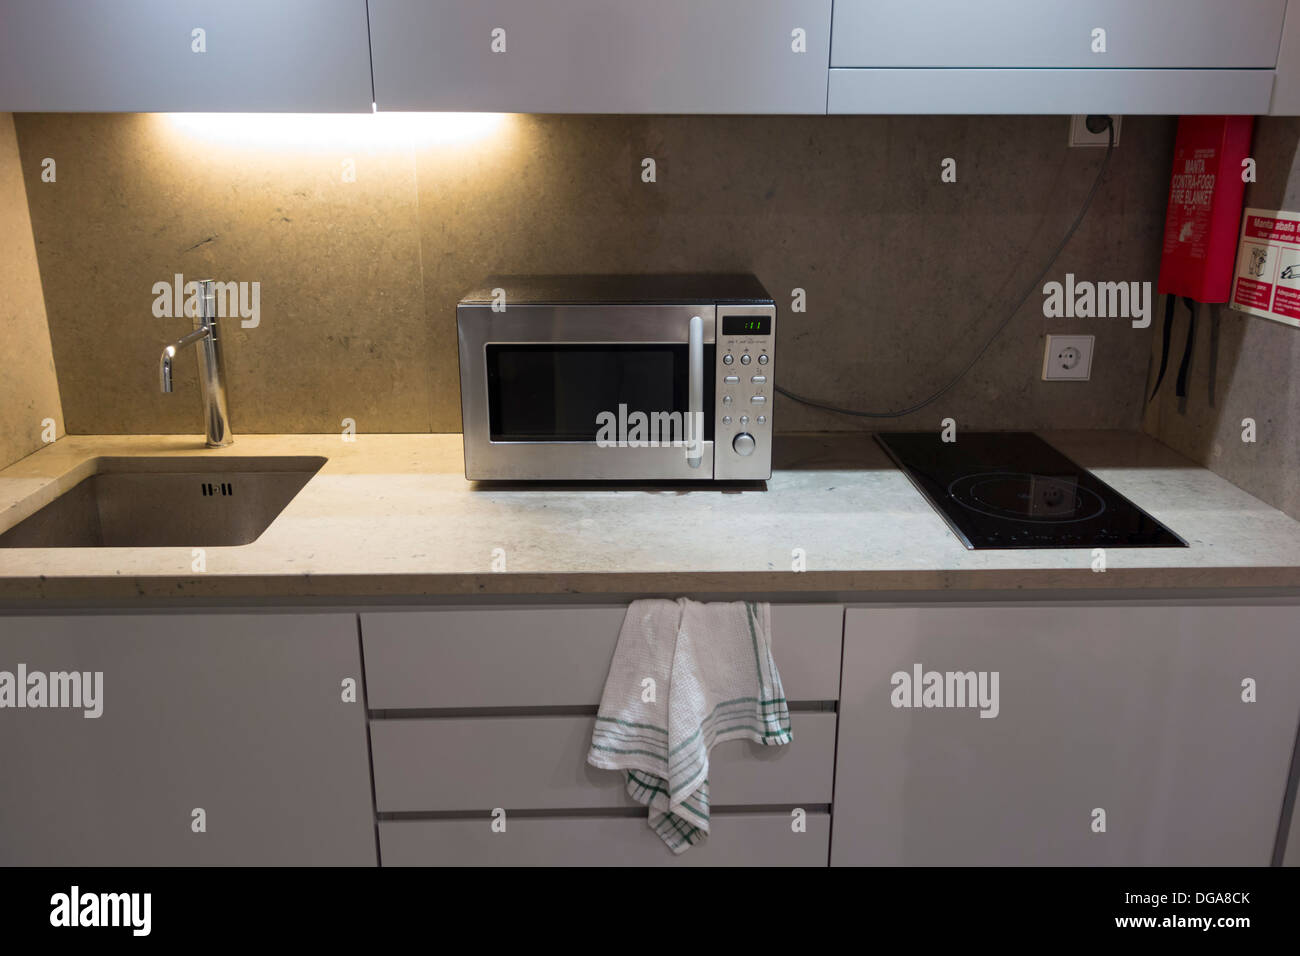 Kitchen Microwave Small Modern White Kitchen Counter With Microwave Oven Stock Photo